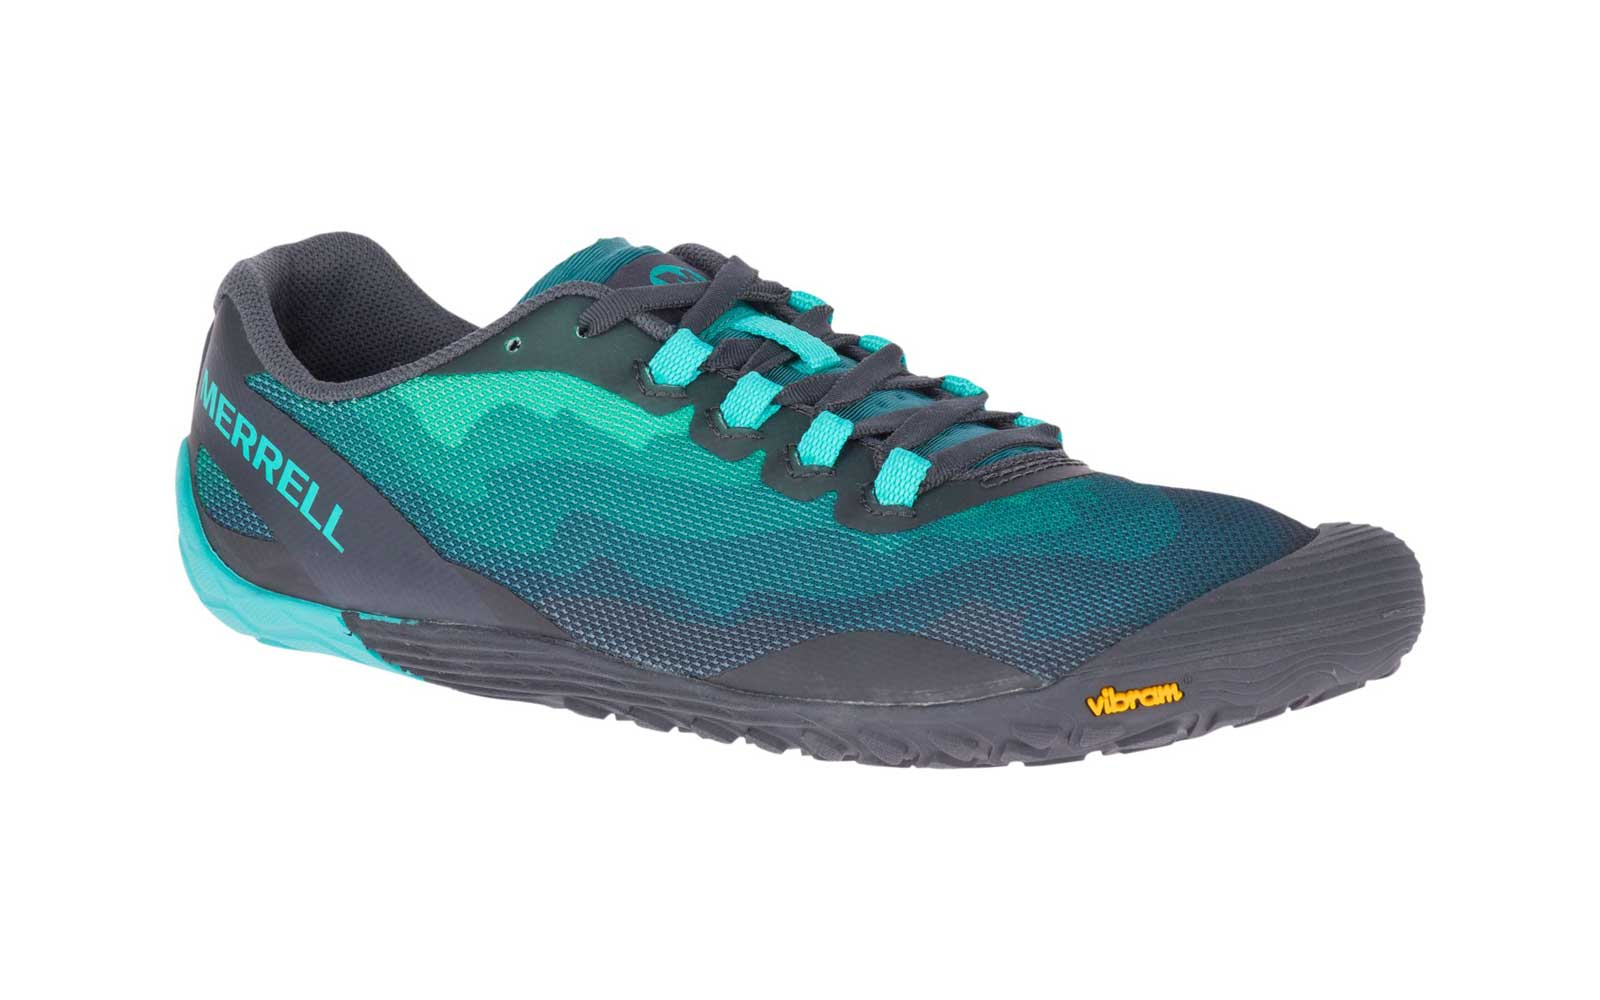 special buy get online world-wide renown The 20 Best Hiking Shoes and Boots for Women in 2019 ...